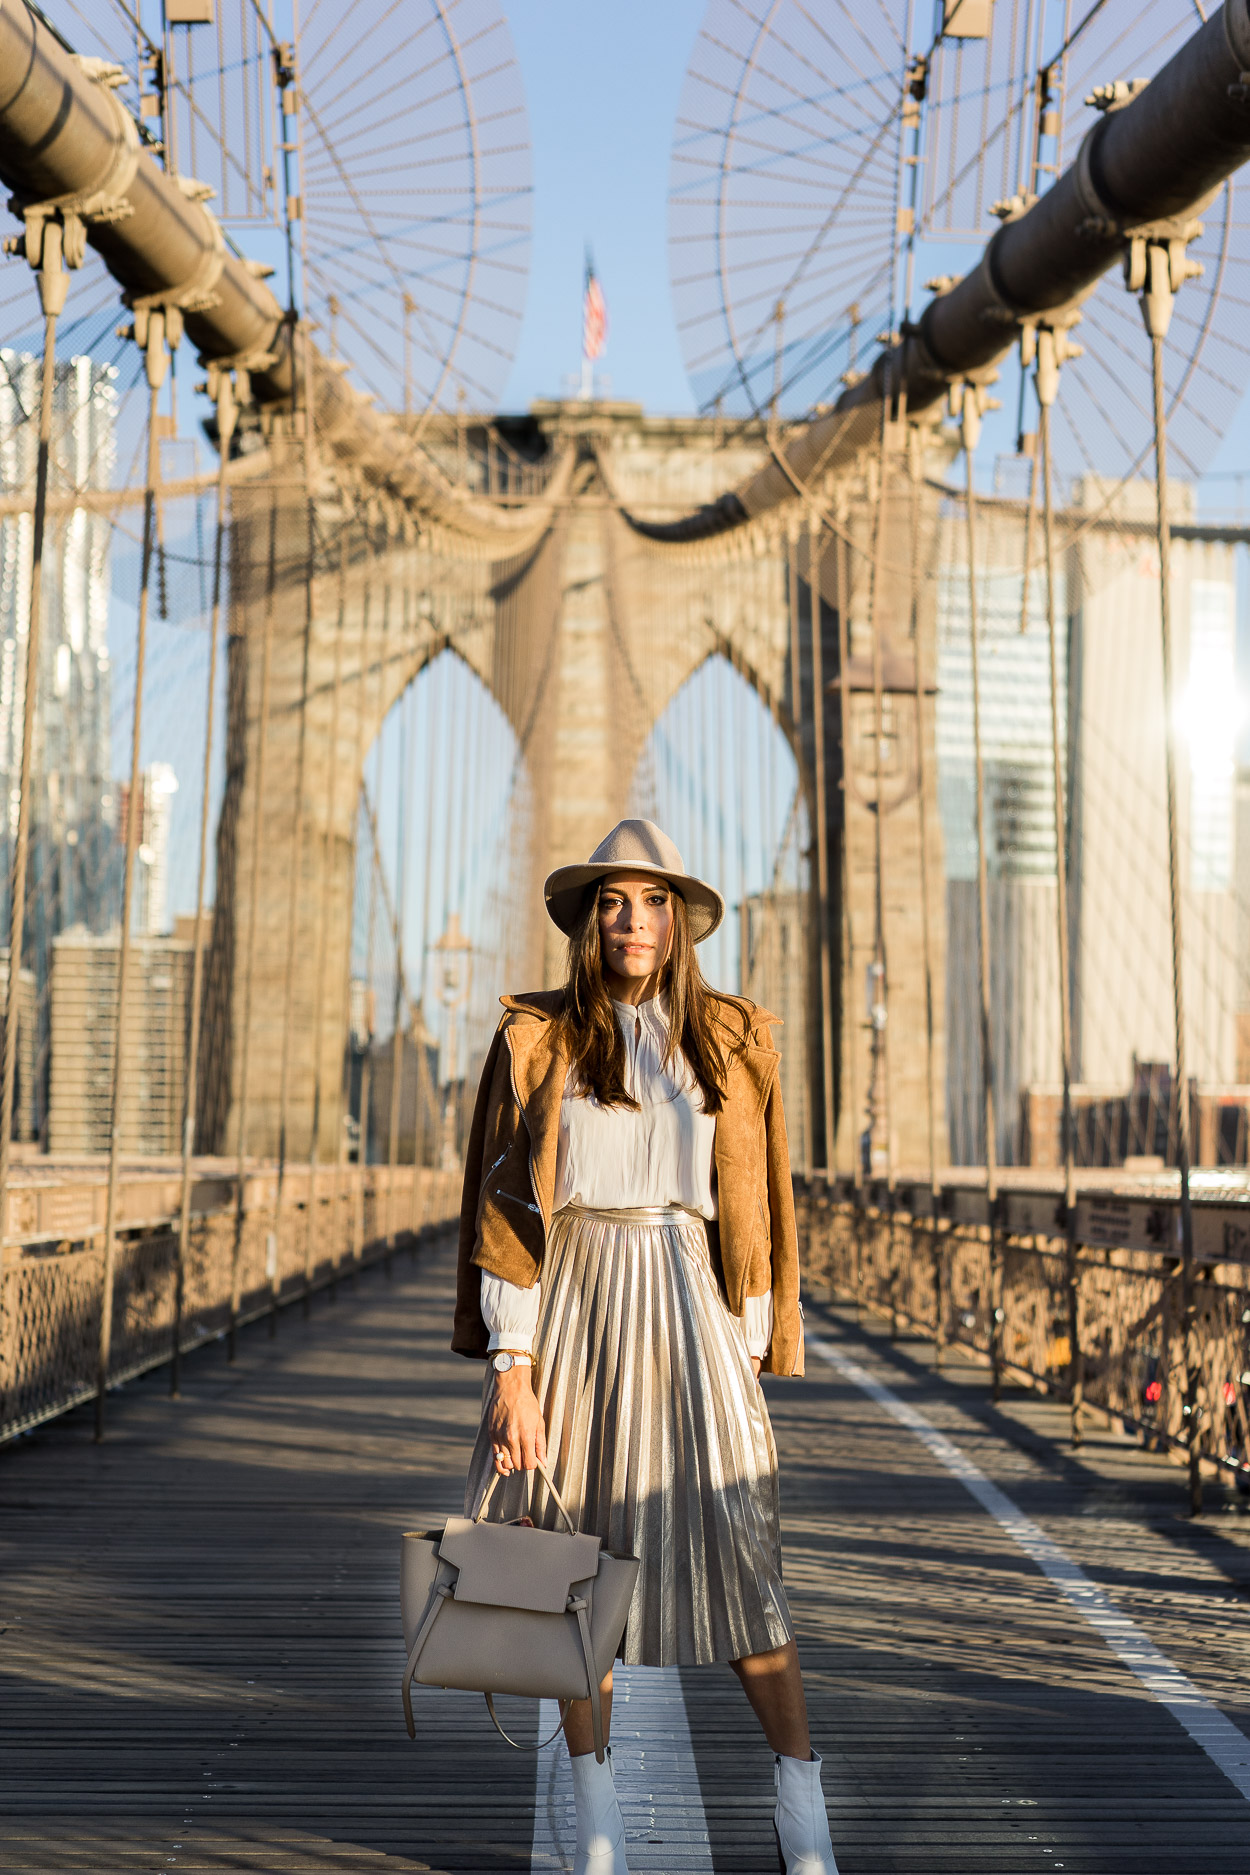 A metallic pleated skirt is trending for Fall and blogger A Glam Lifestyle shares how she styles hers with pretty neutrals like a cream top by Aritzia with a Lulus camel suede jacket and Topshop white ankle booties